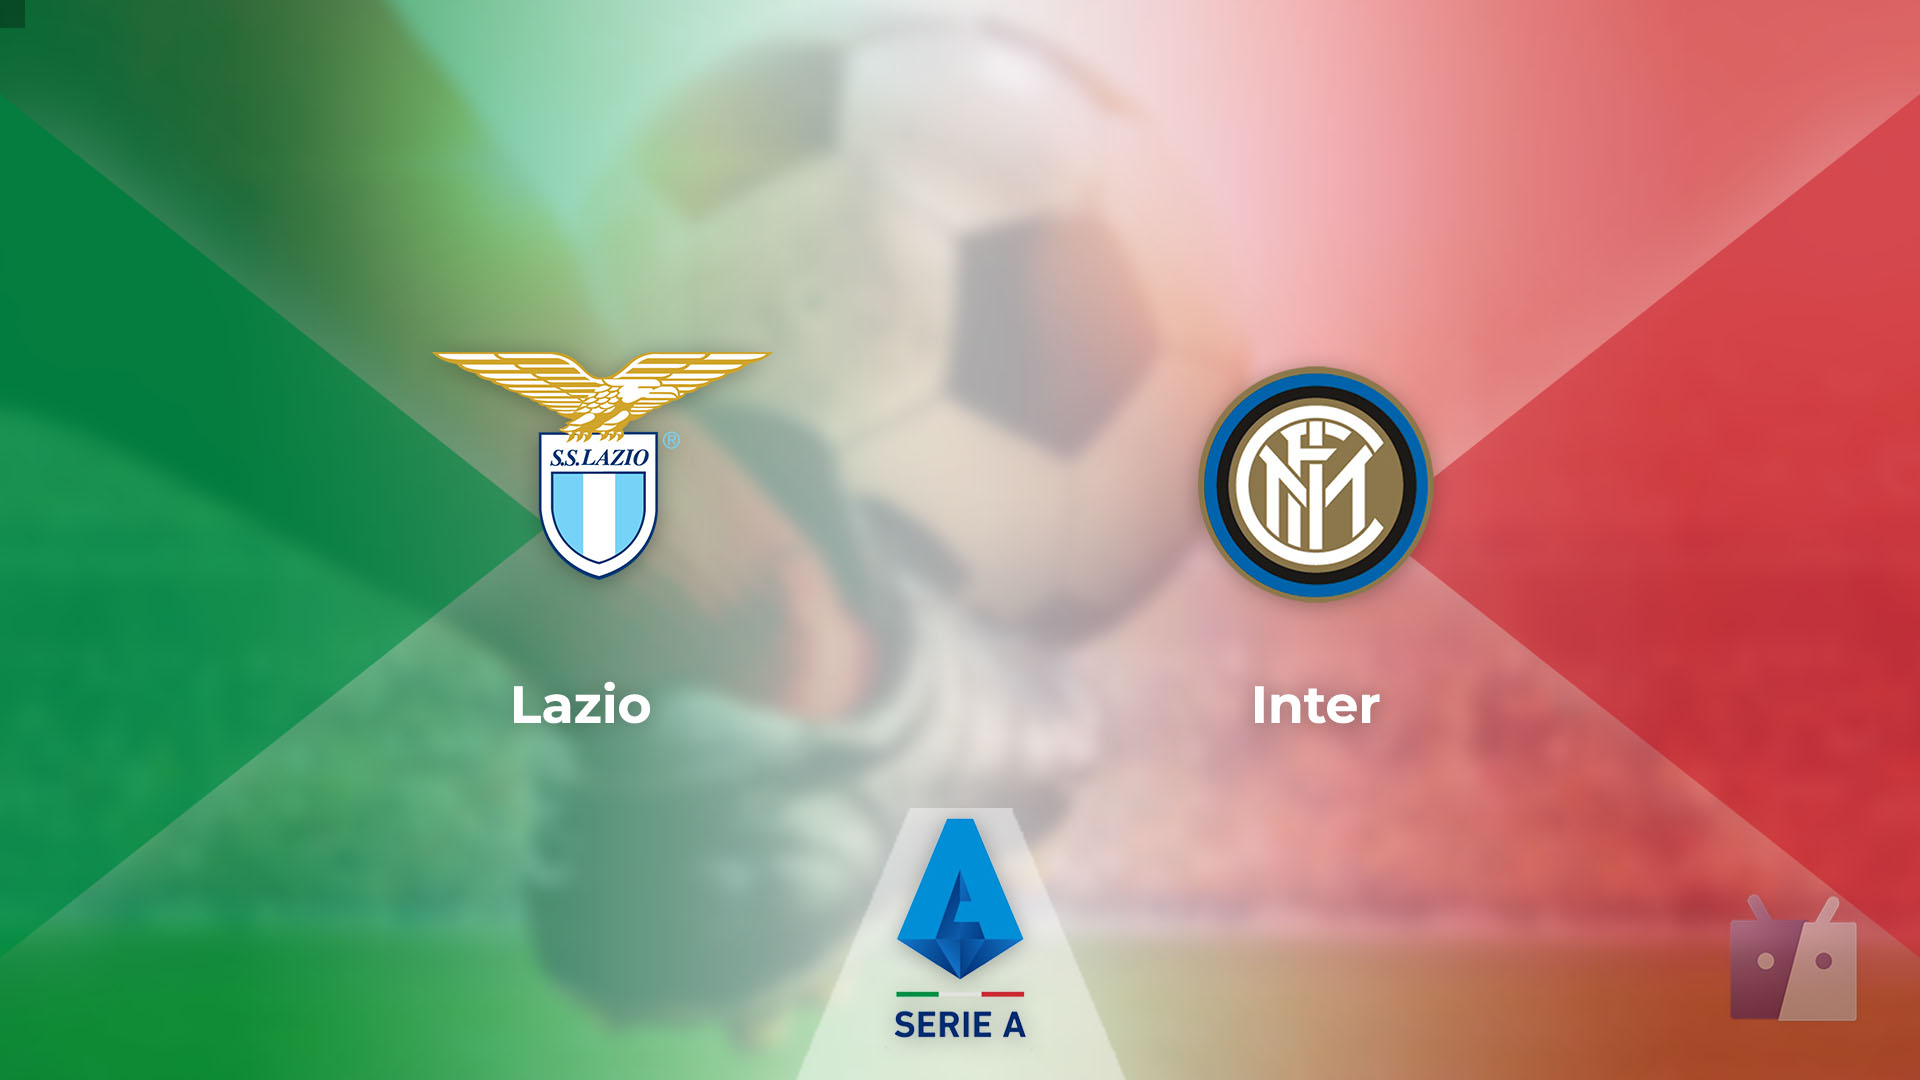 Dove vedere la partita tra Lazio e Inter in TV e streaming